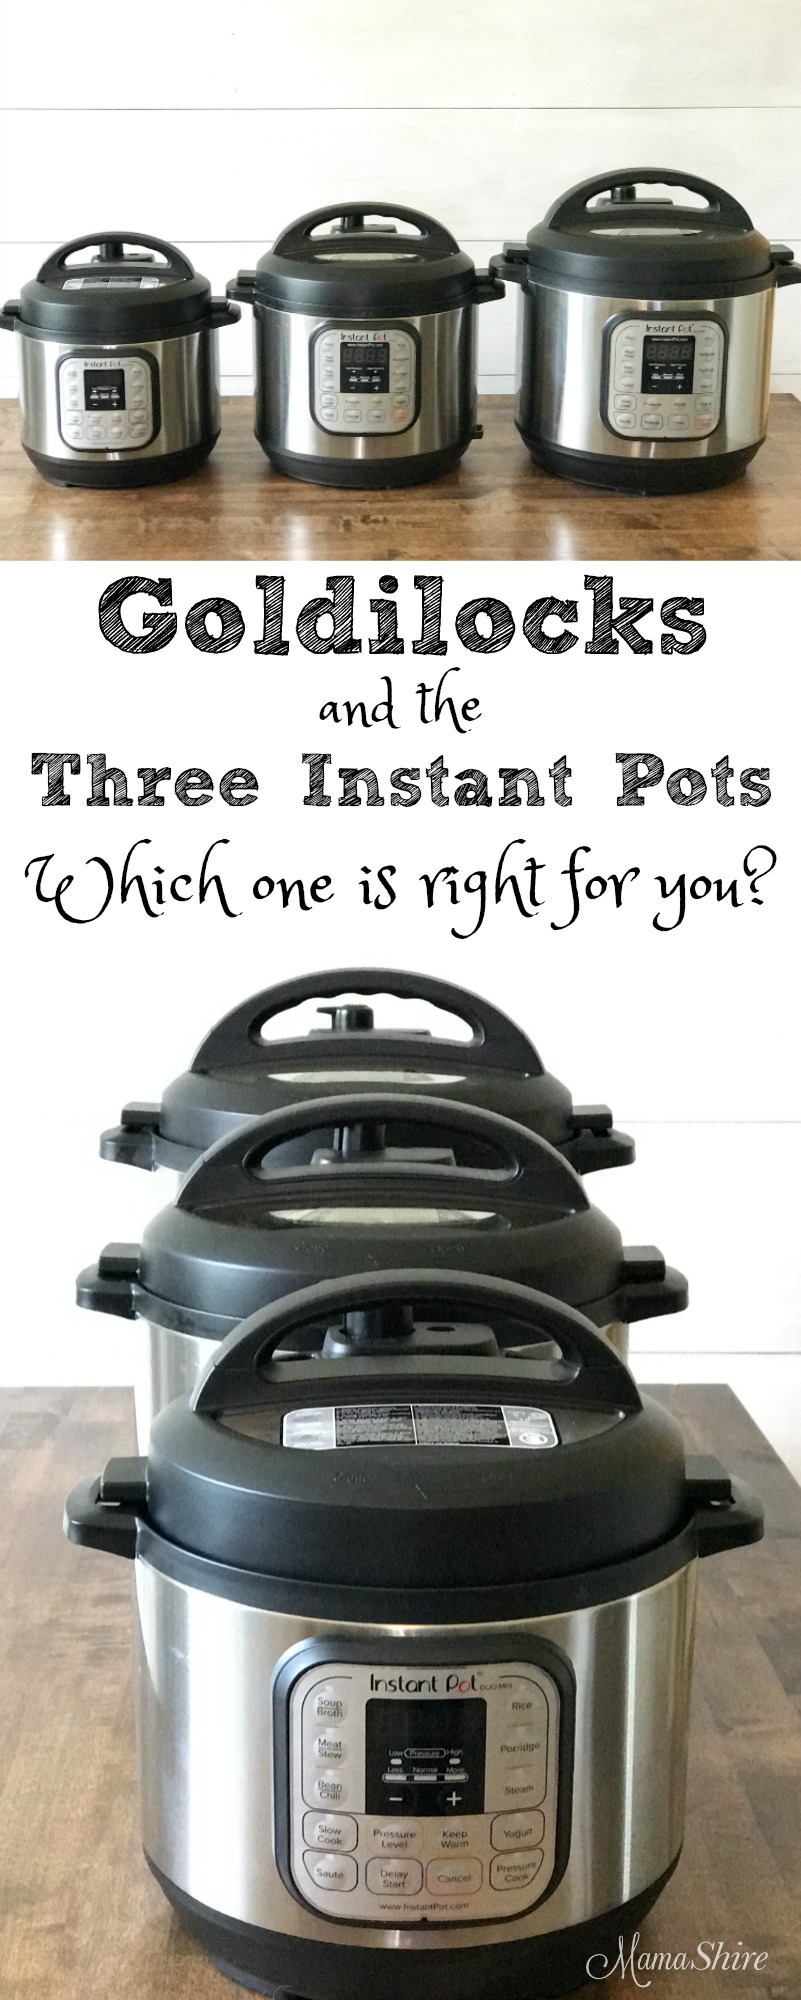 Goldilocks and the Three Instant Pots - Which one is right for you?